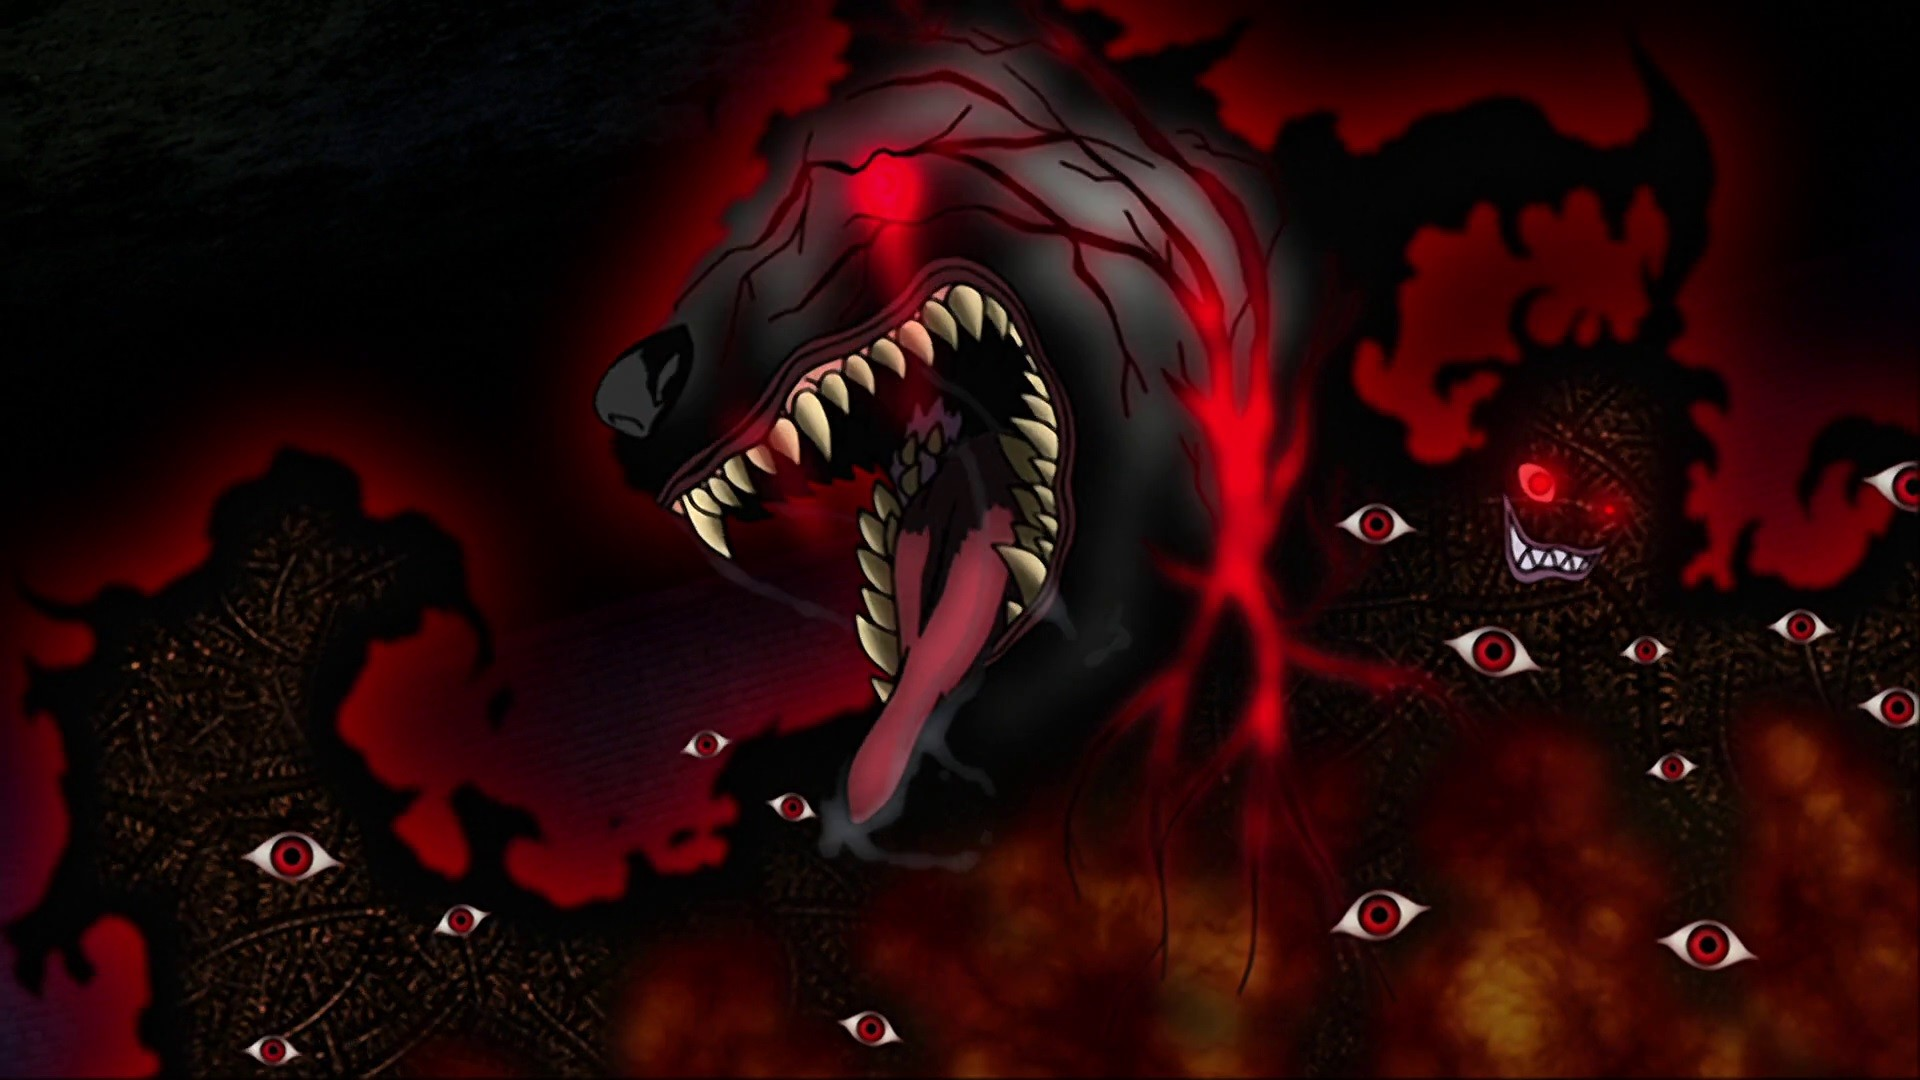 Res: 1920x1080, 1000+ images about Hellsing on Pinterest | Wolves, Hellsing